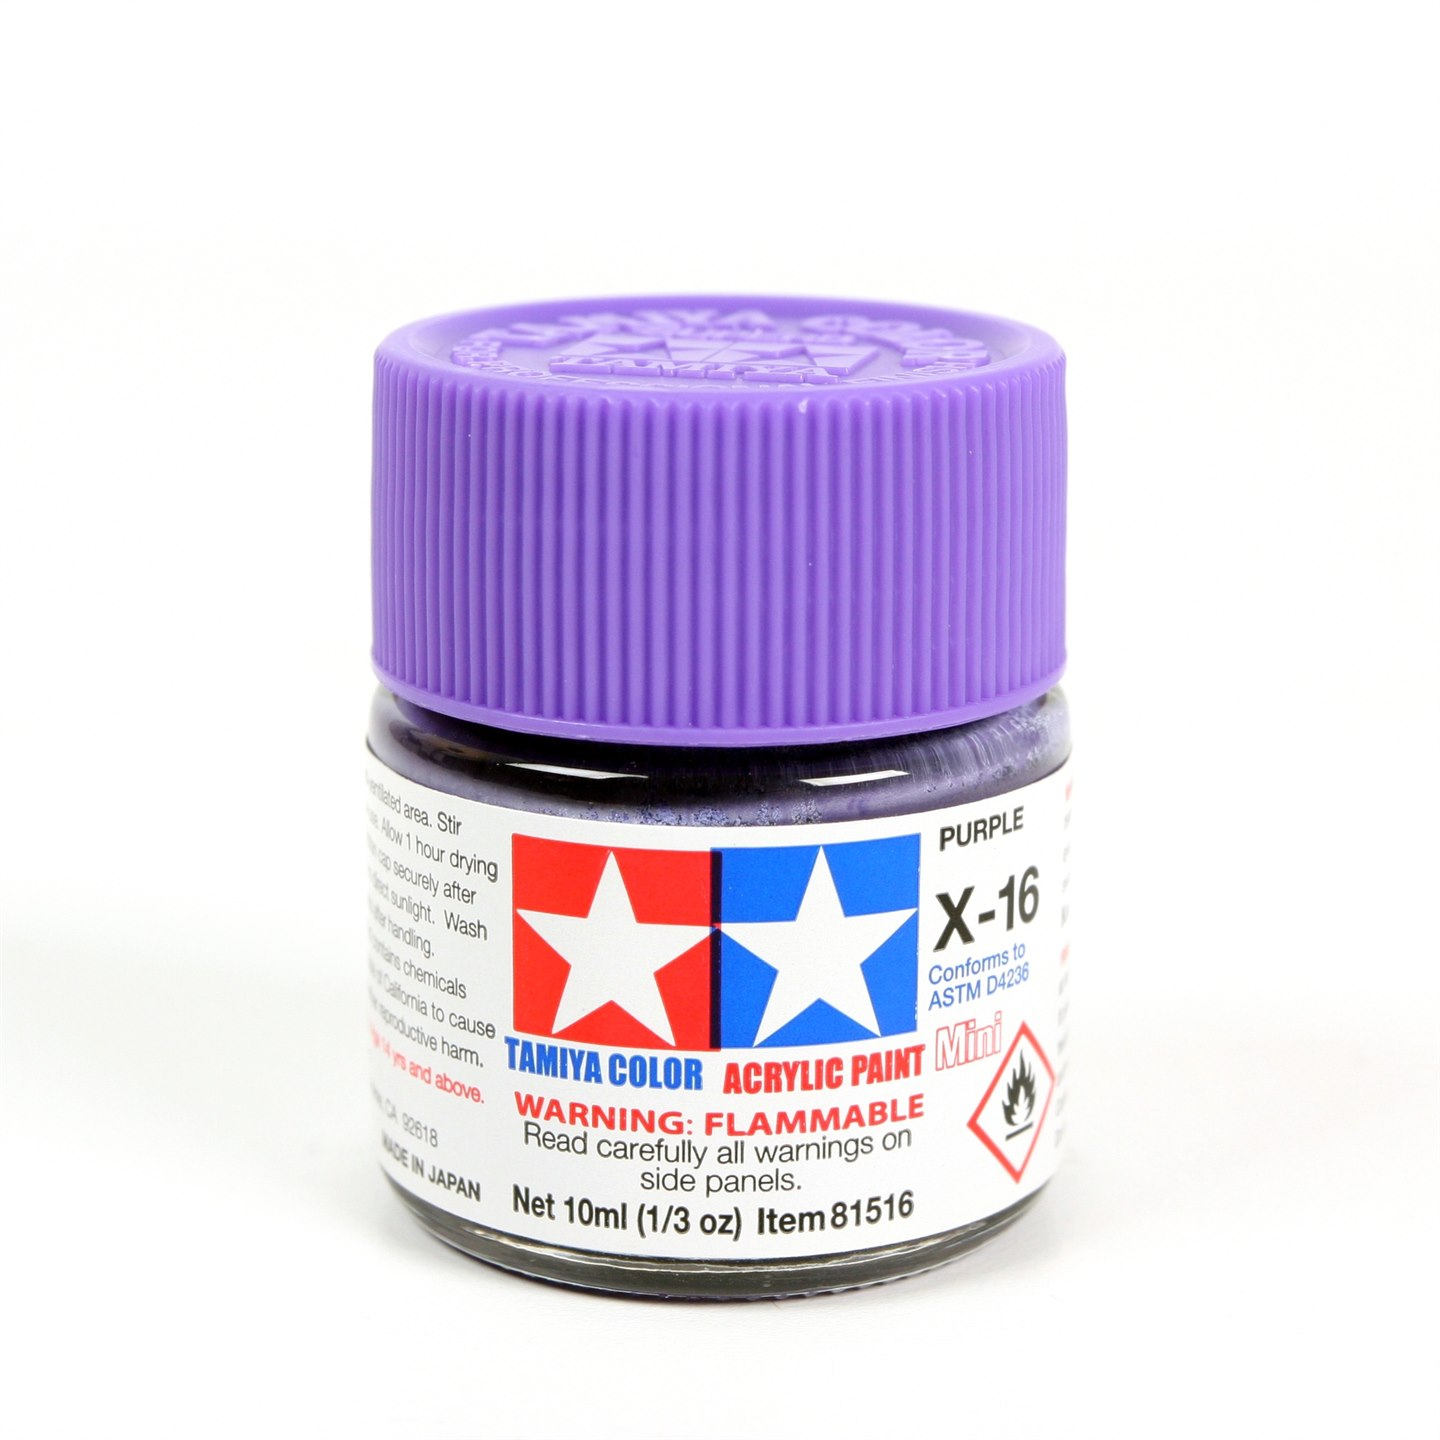 Tamiya Color Acrylic Paint Mini X-16 (Purple) (10ml)